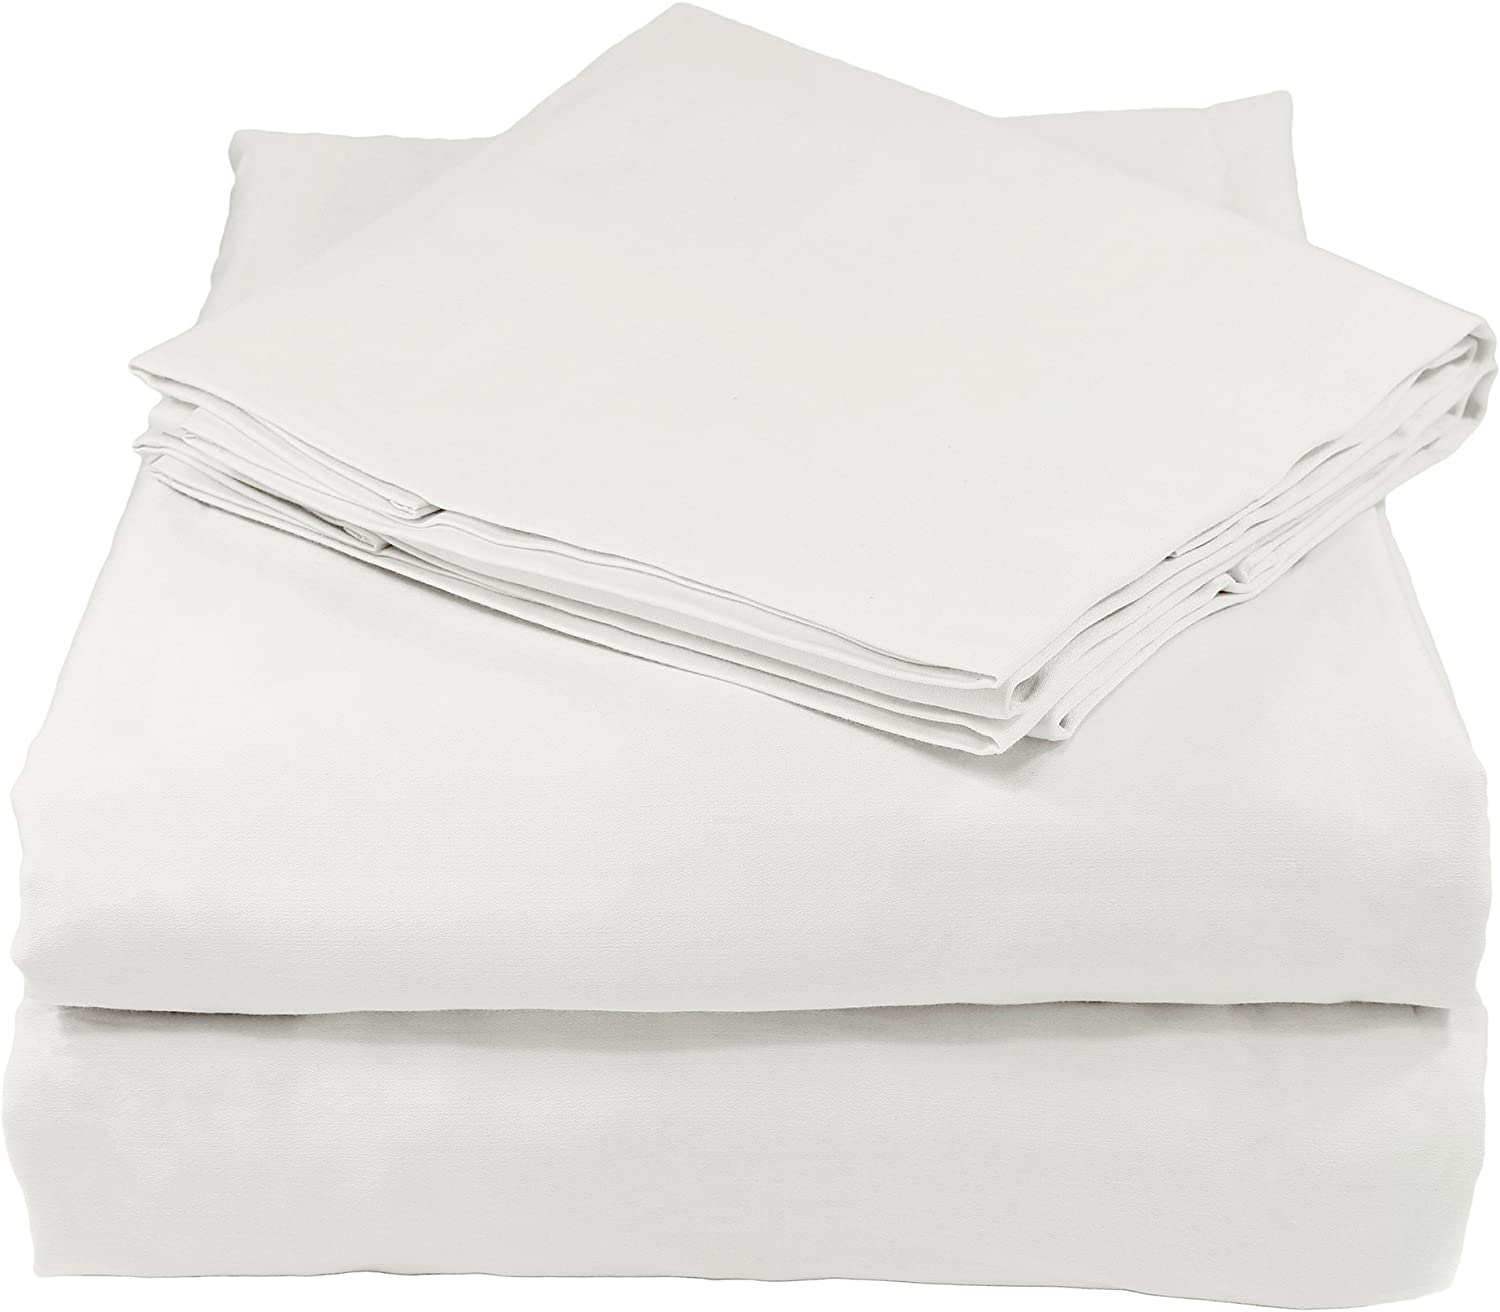 Whisper Organics Bed Sheets, Organic 100% Cotton Sheet Set, 400 Thread Count, 4 Piece  Fitted Sheet, Flat Sheet + 2 Pillowcases, Full, White